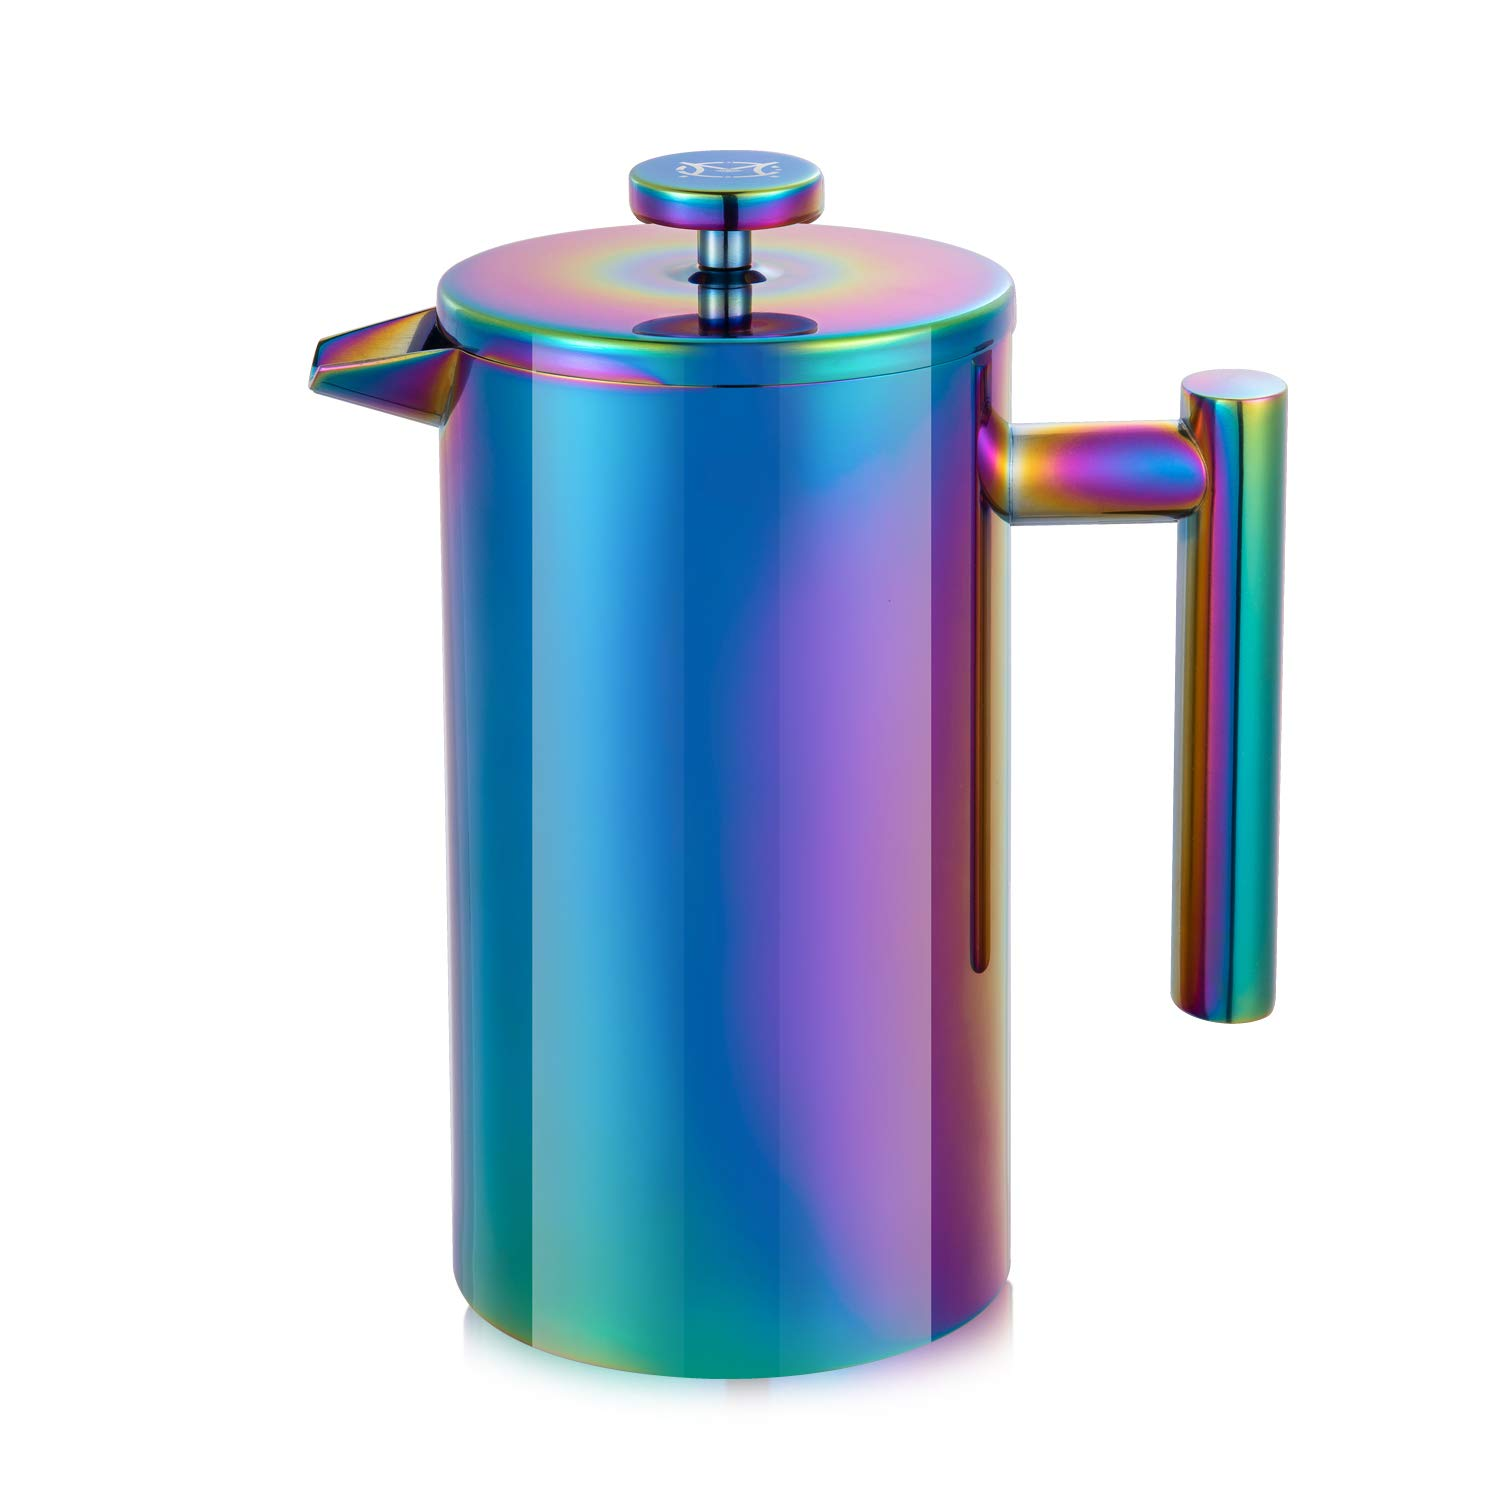 Magicafé French Press Coffee Maker - Stainless Steel Coffee Maker Double Walled French Press Rainbow 34oz/1L by MAGICAFÉ